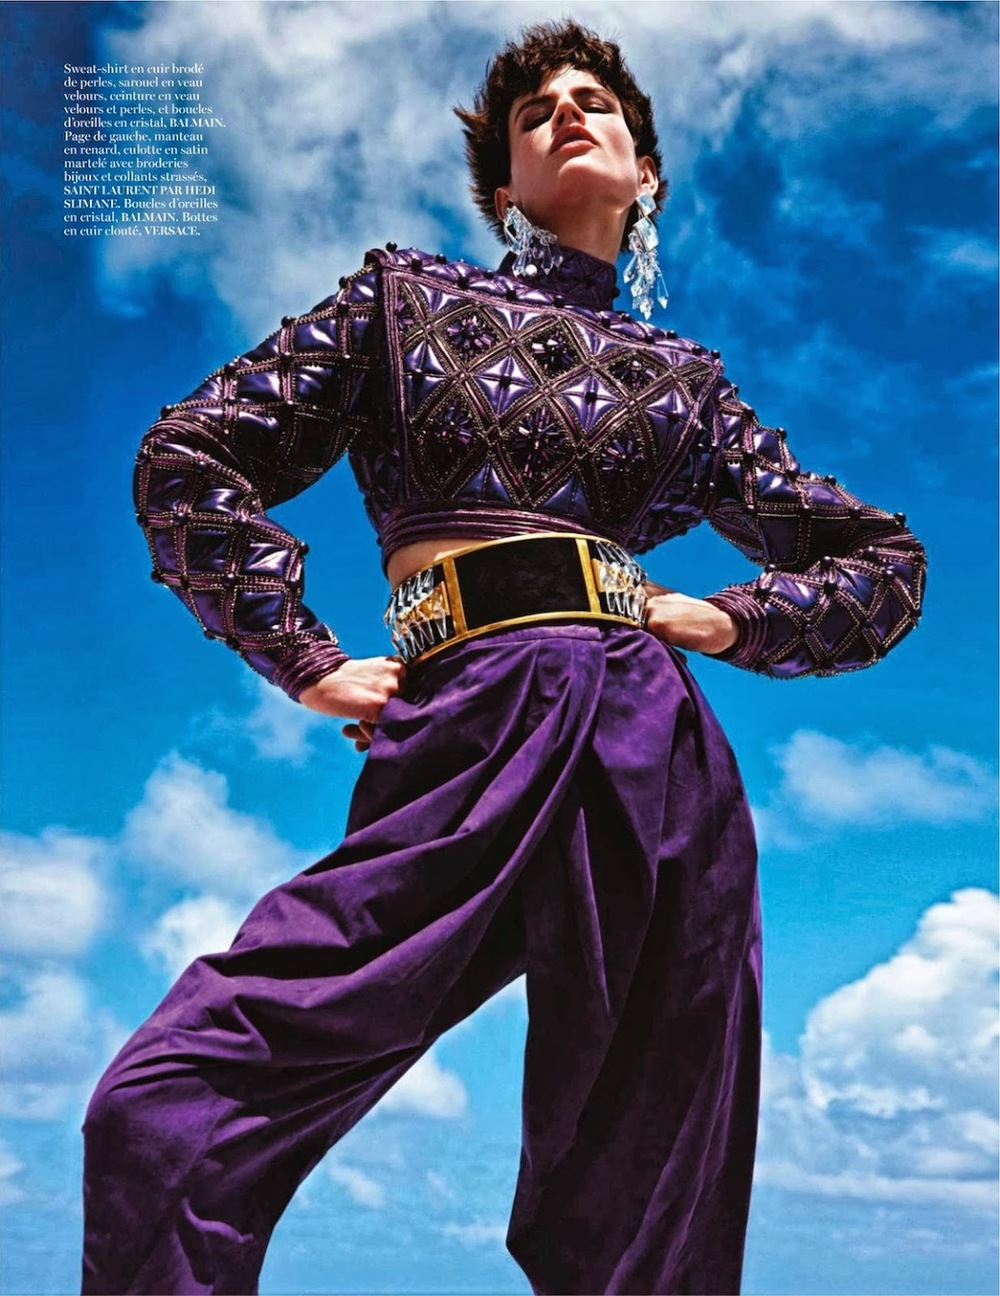 Purple Extreme: Saskia De Brauw wears Balmain in this colorful and fantastic editorial, via Vogue Paris